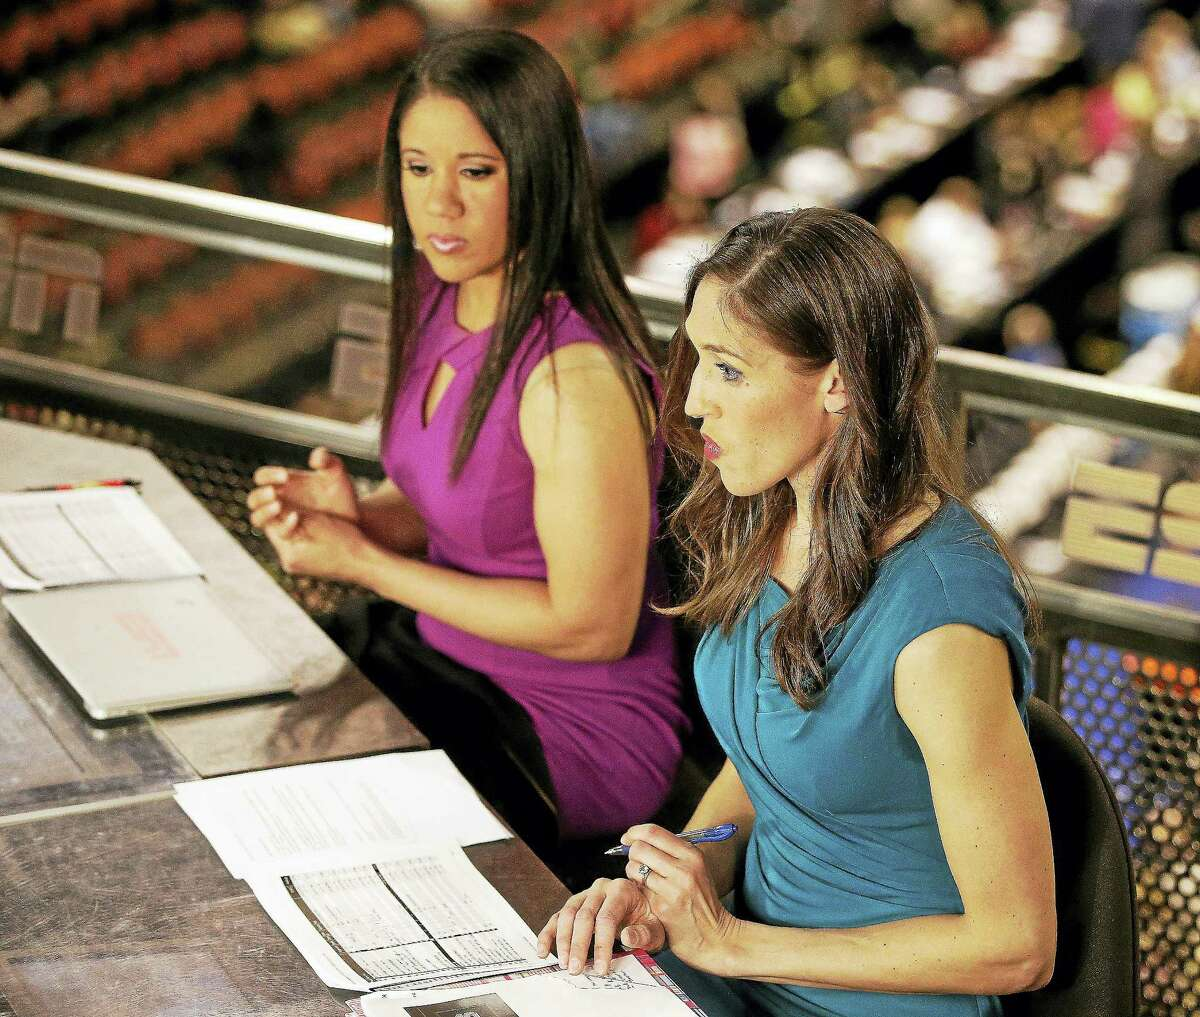 Rebecca Lobo, right, grew up 15 minutes from the Basketball Hall of Fame. Now she'll be enshrined there.